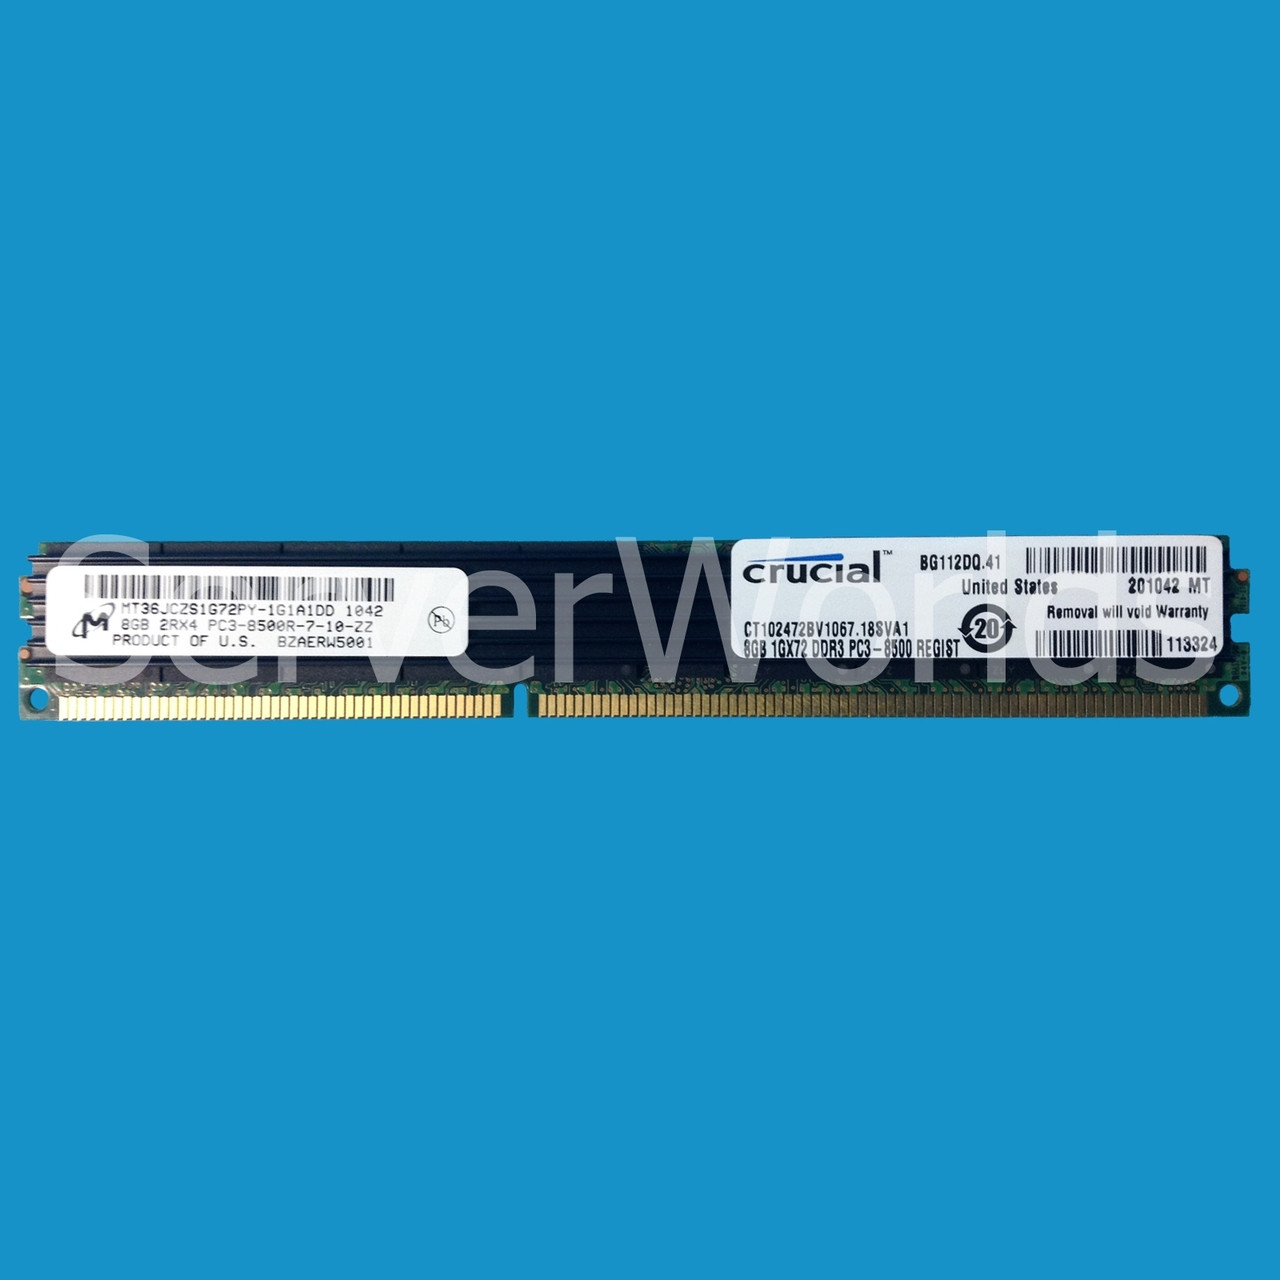 Crucial CT102472BV1339 | 8GB PC3-10600R (2Rx4) ECC DDR3 VLP